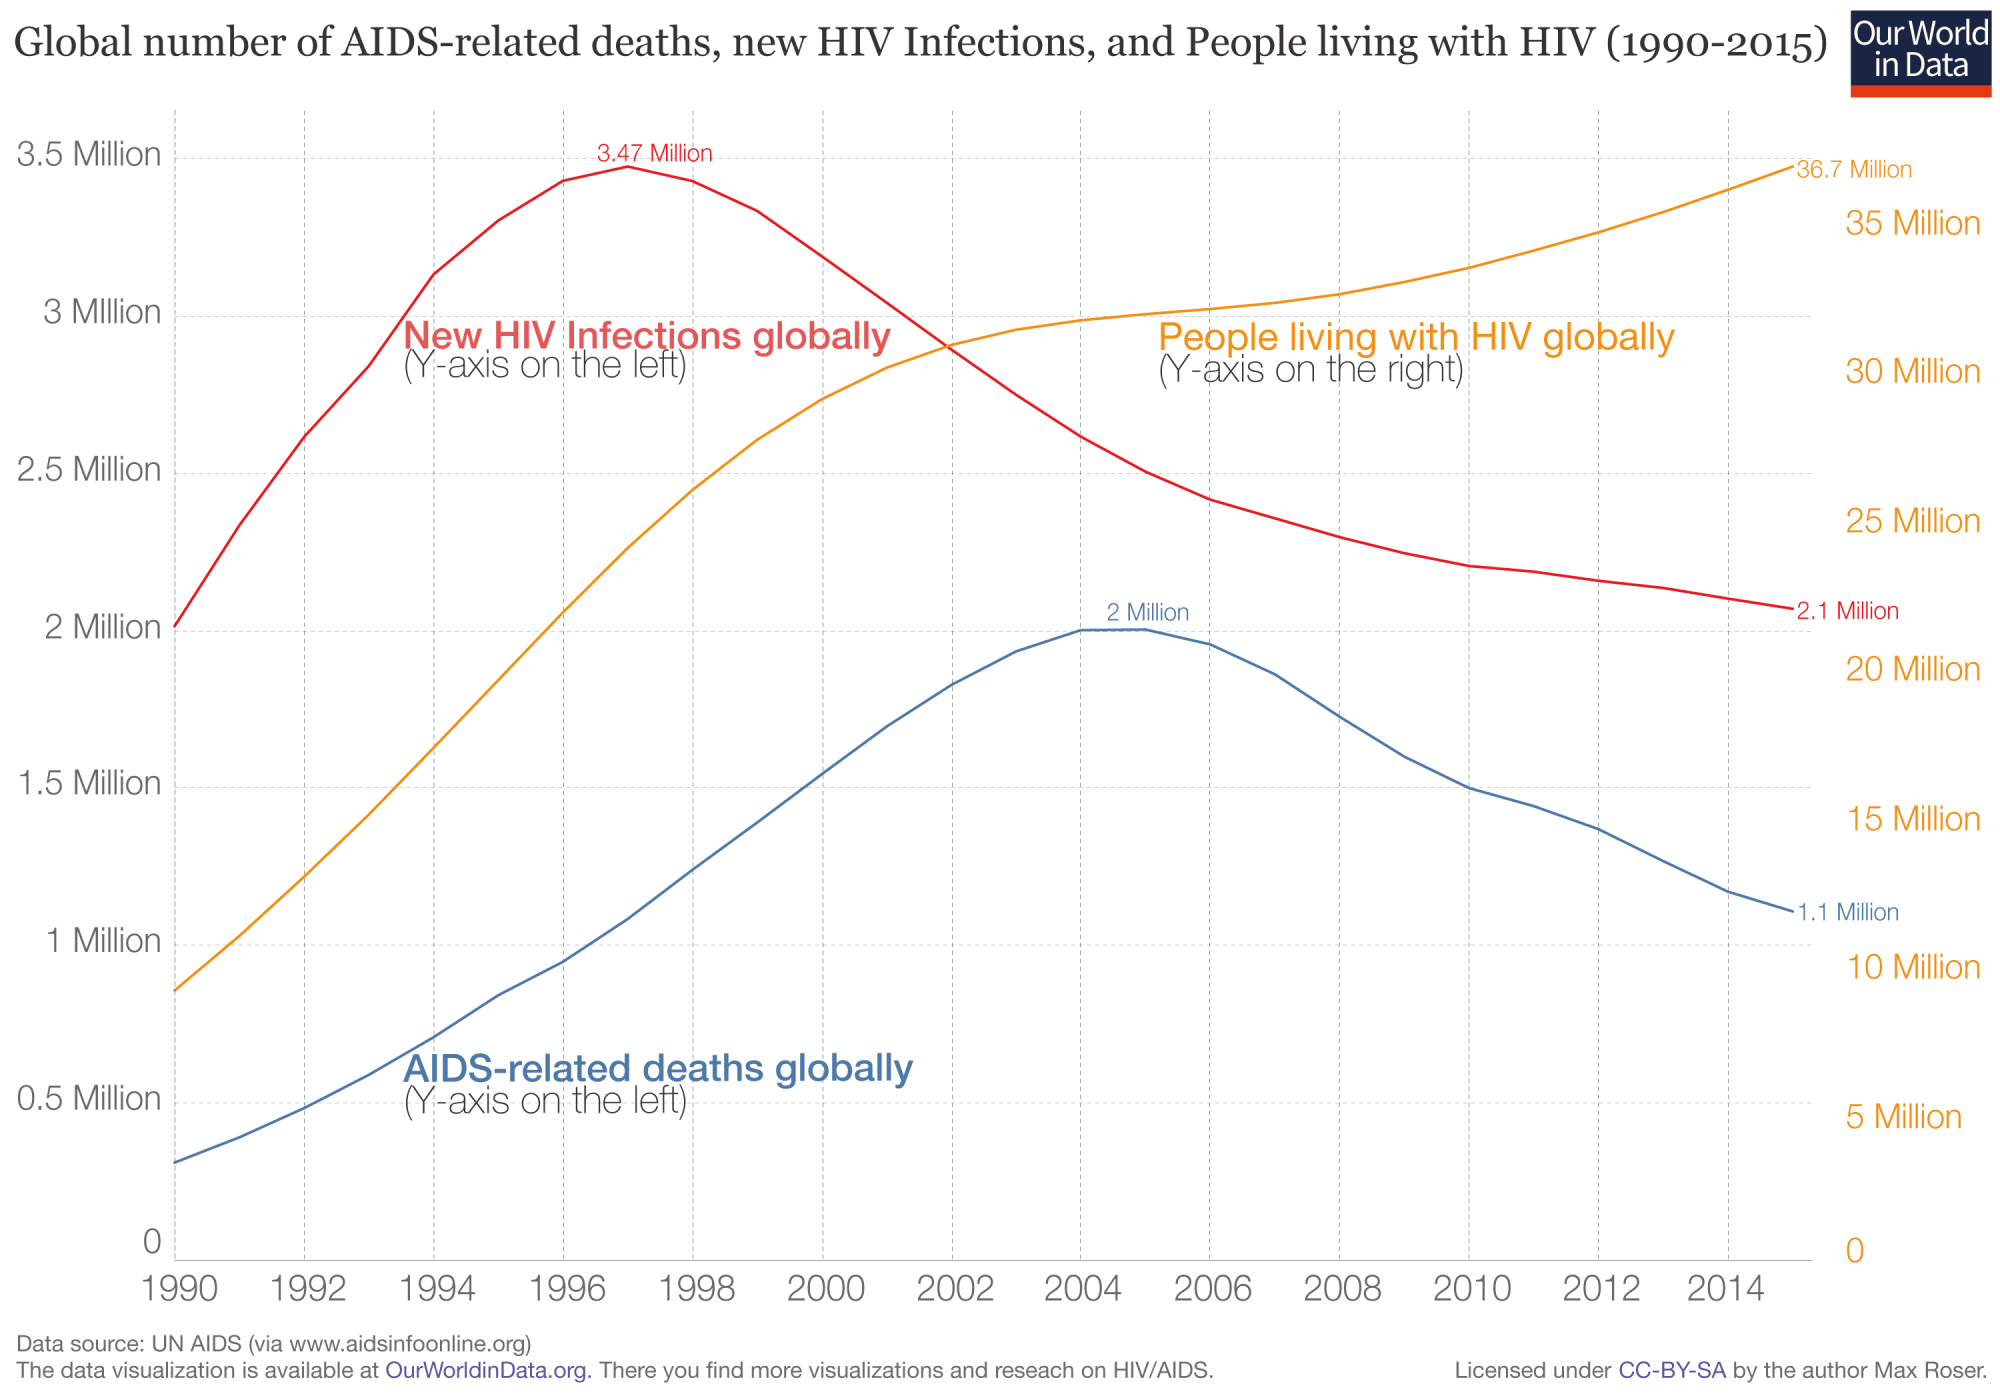 hight resolution of global number of aids related deaths new hiv infections and people living with hiv 1990 2015